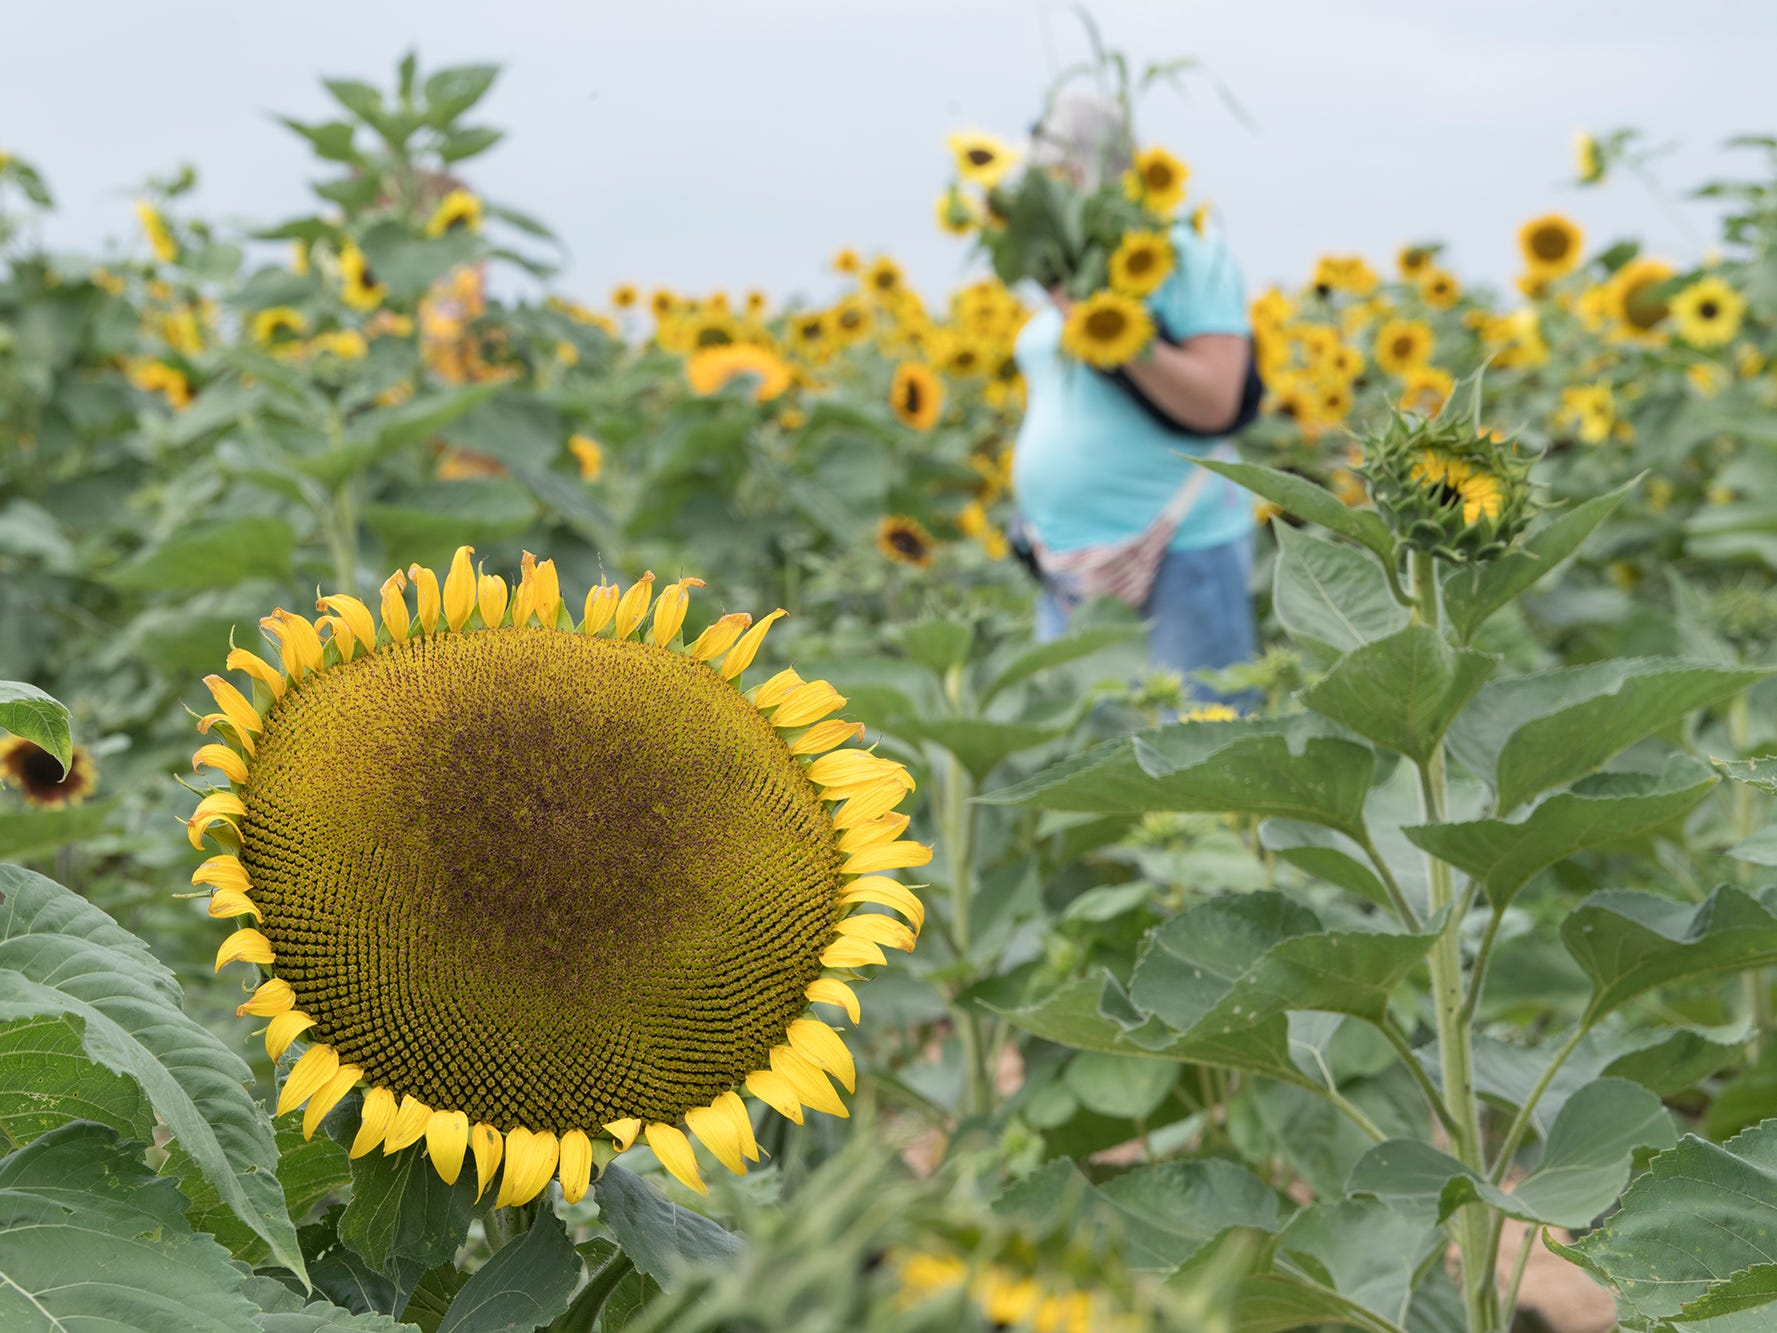 A person gathers sunflowers during the 2nd Annual Sunflower Festival at Maple Lawn Farms near New Park.